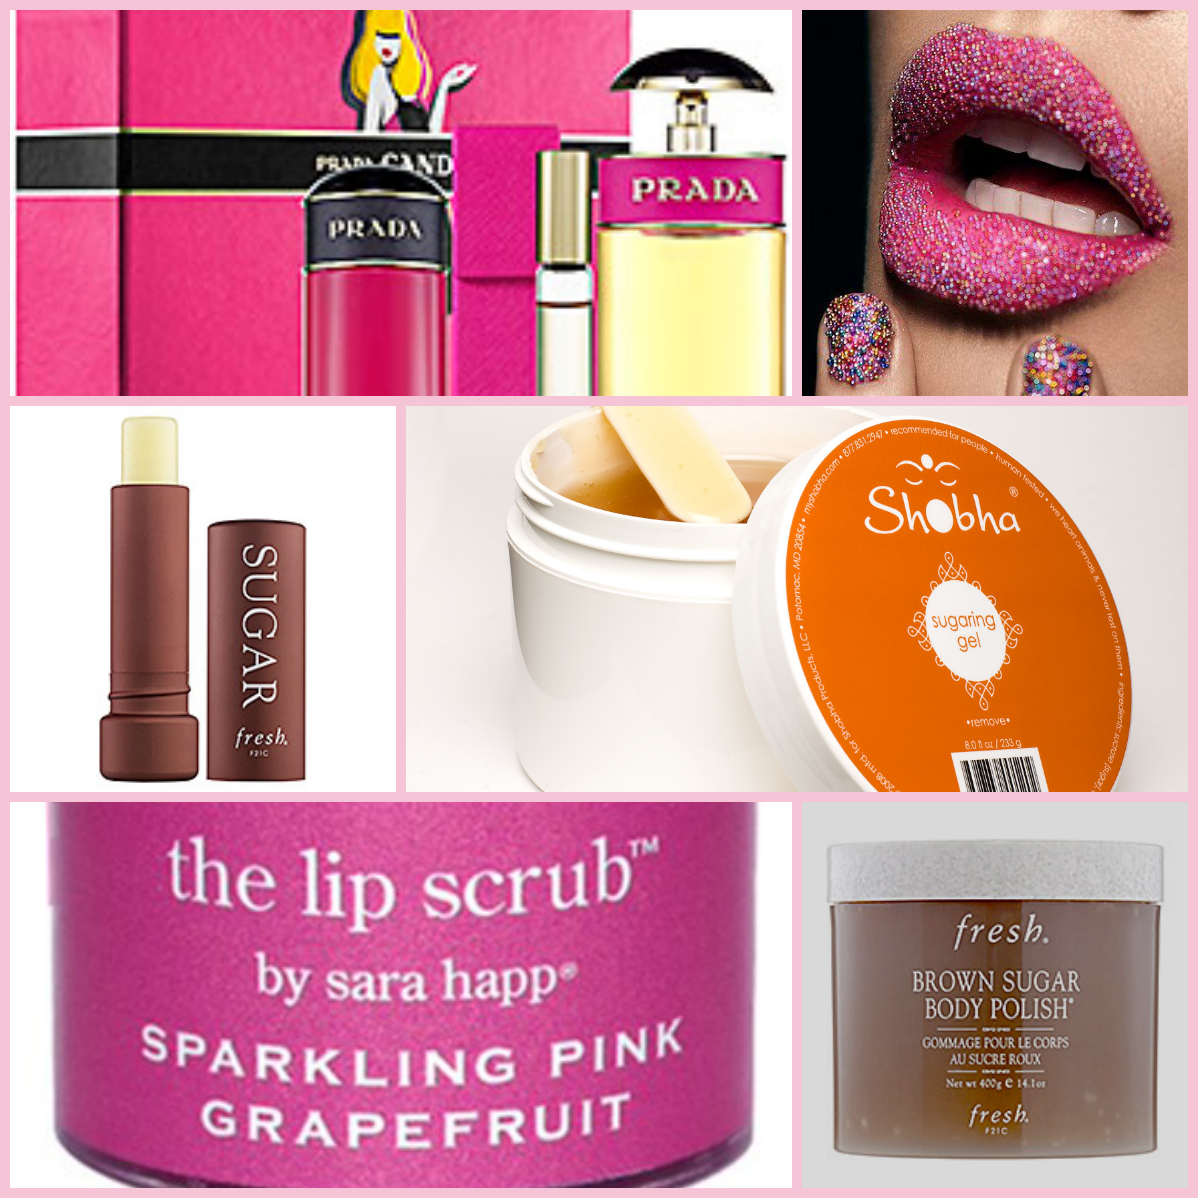 Sugar Rush: 5 Sugar-infused Beauty Products To Try Now